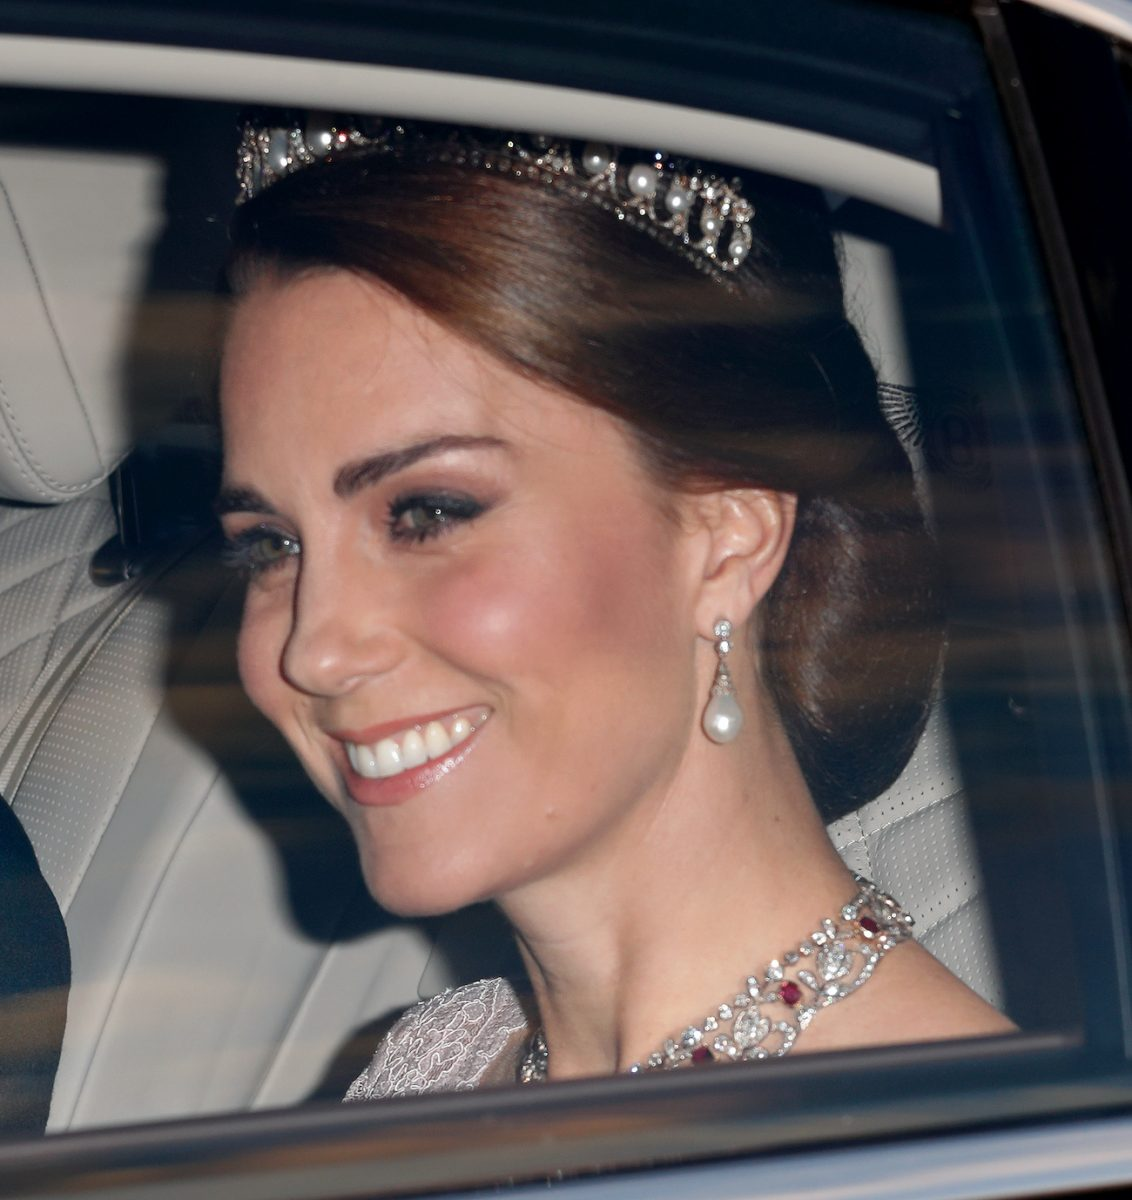 Kate Middleton attends 2017 state banquet